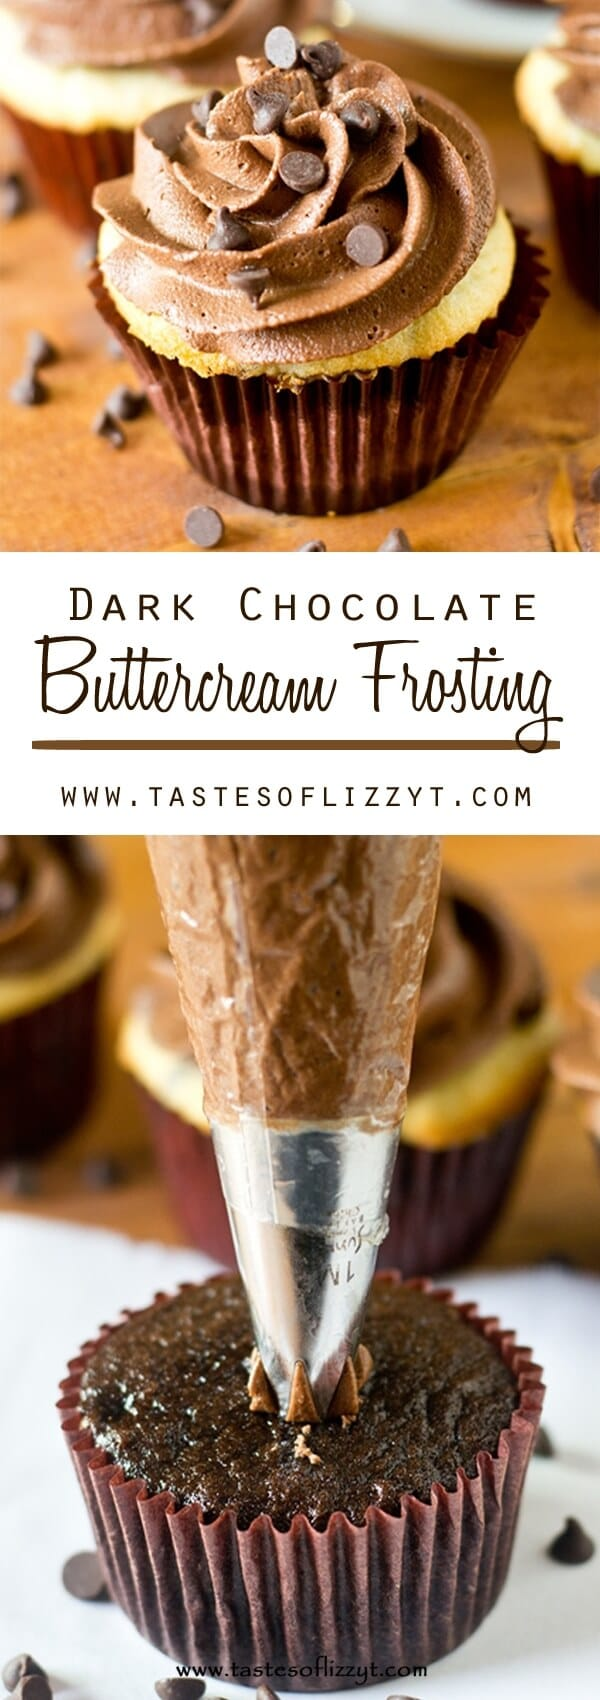 Rich, chocolatey, sweet, and smooth, this Dark Chocolate Buttercream Frosting is sure to please any chocolate lover! Perfect for cakes and cupcakes.